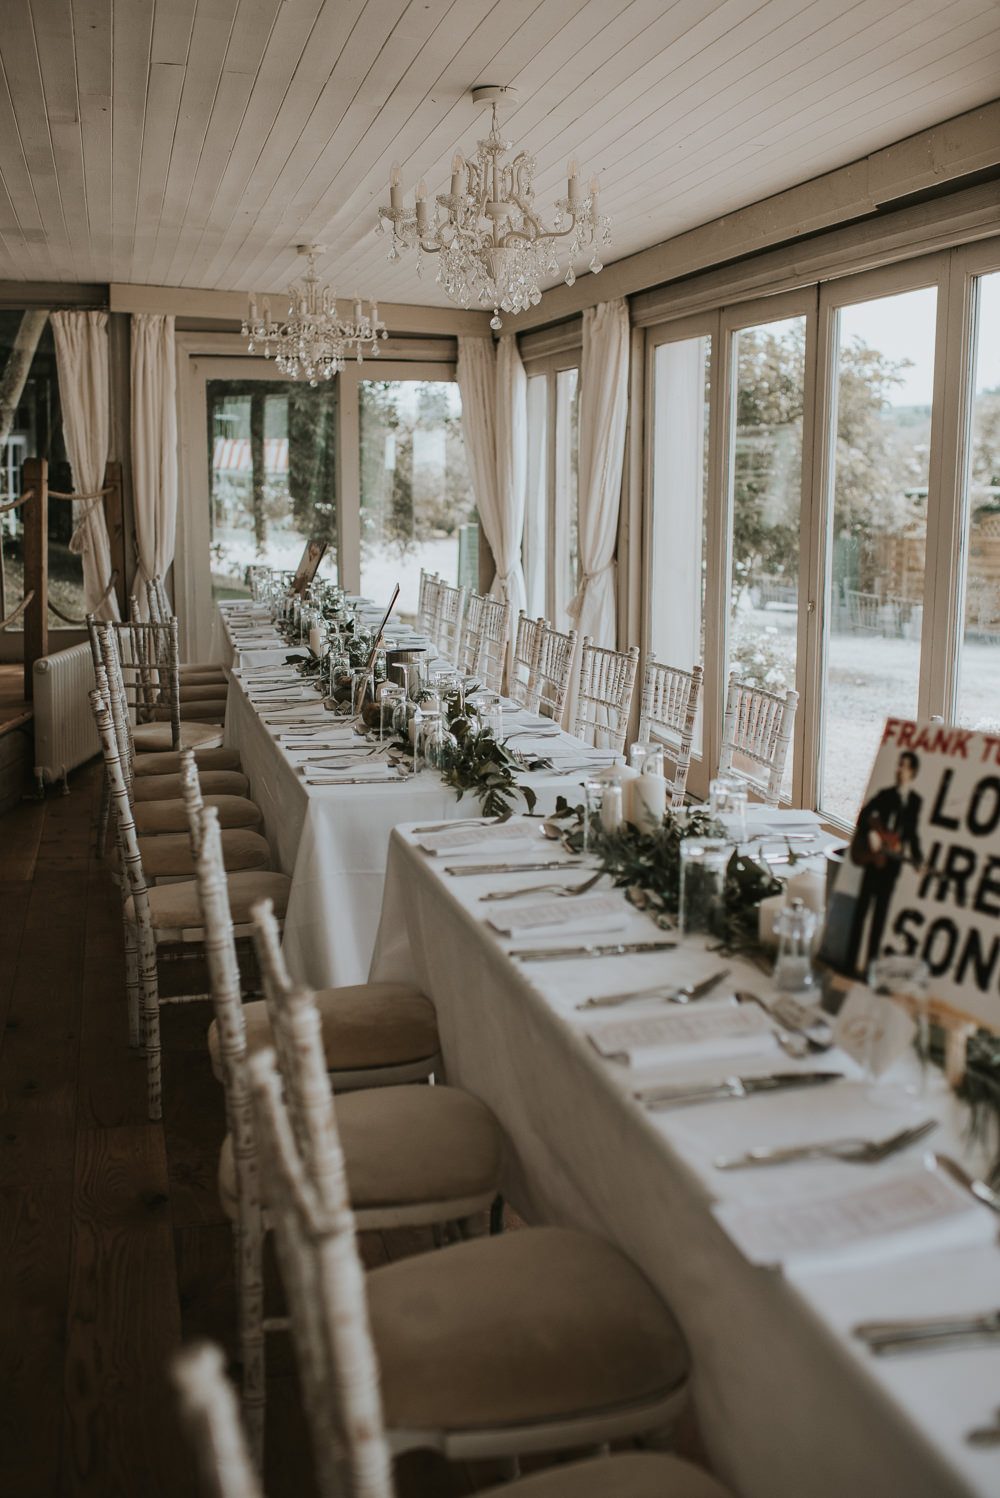 Long Tables Greenery Foliage Swags Garlands Millhouse Wedding Louise Scott Photography